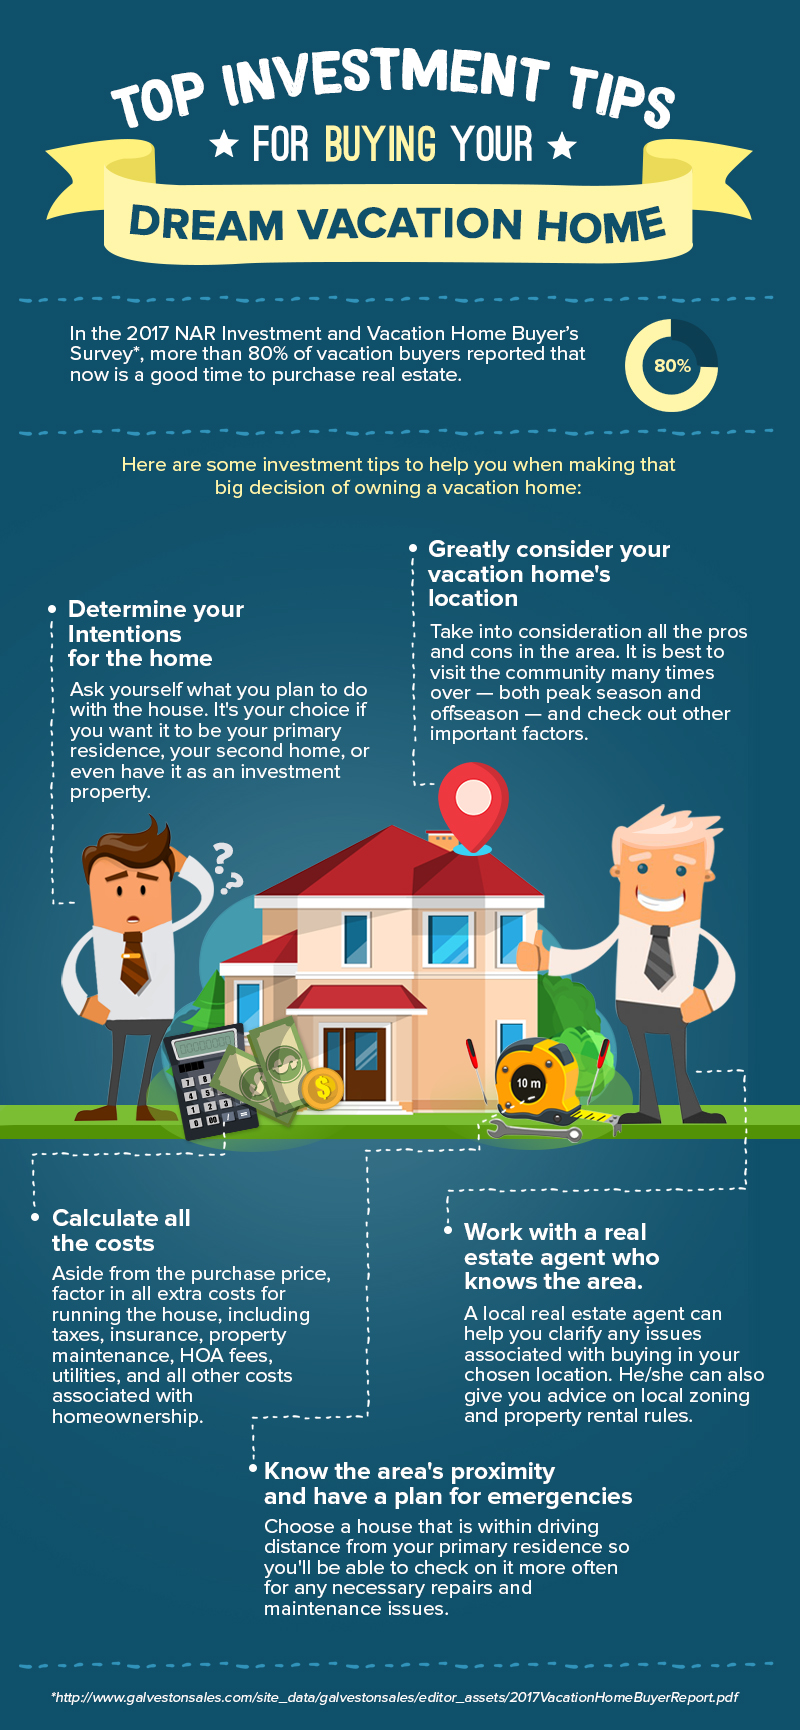 Top Investment Tips for Buying Your Dream Vacation Home.jpg